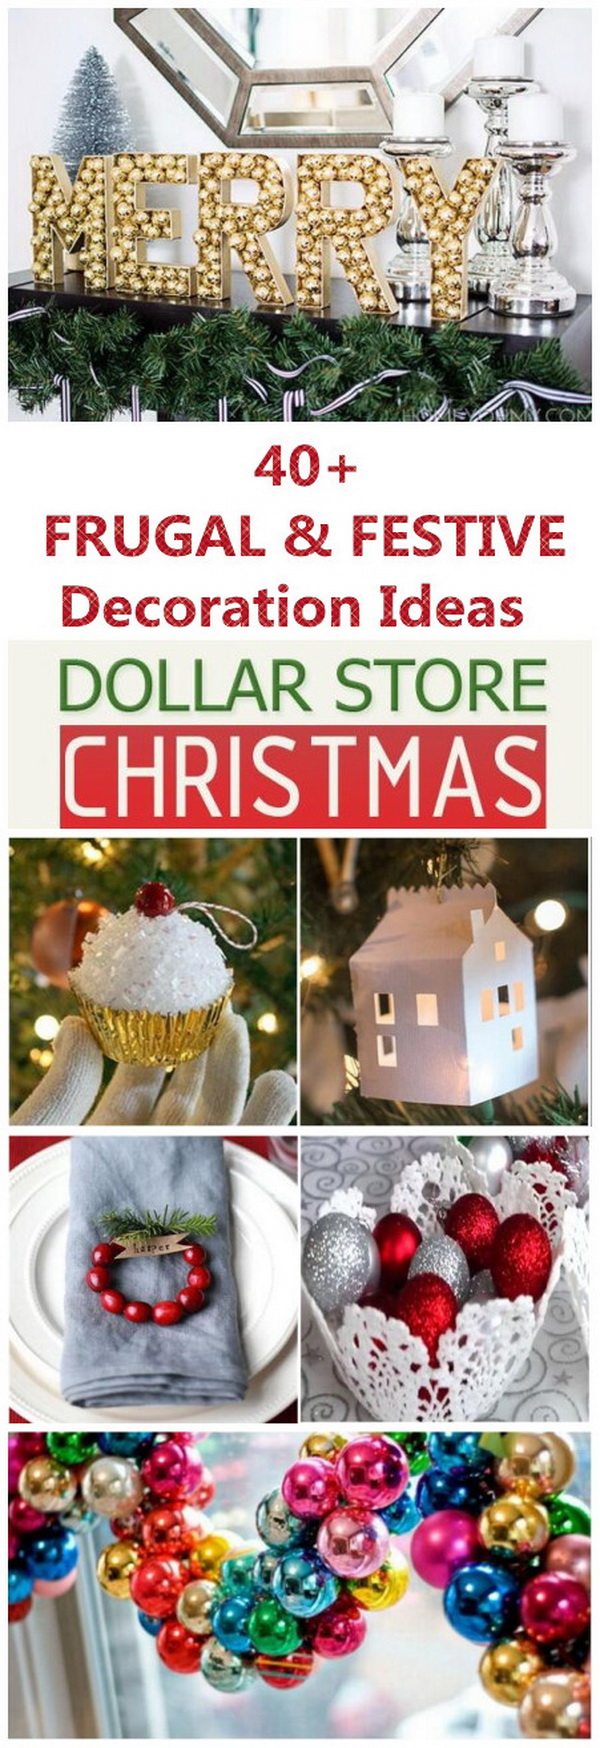 40+ Frugal and Festive DIY Dollar Store Christmas Decoration Ideas.Christmas is just around the corner! Every homeowner are struggling with the ideas for their holiday decoration and gifts! However, most of the store-bought items cost a great deal of bucks. With a bit of creativity and DIY skills , you can craft your own holiday decor ideas or gifts from scratch or cheap decor stuffs form the dollar store! Here are 40+ frugal and festive DIY dollar store Christmas decor ideas!